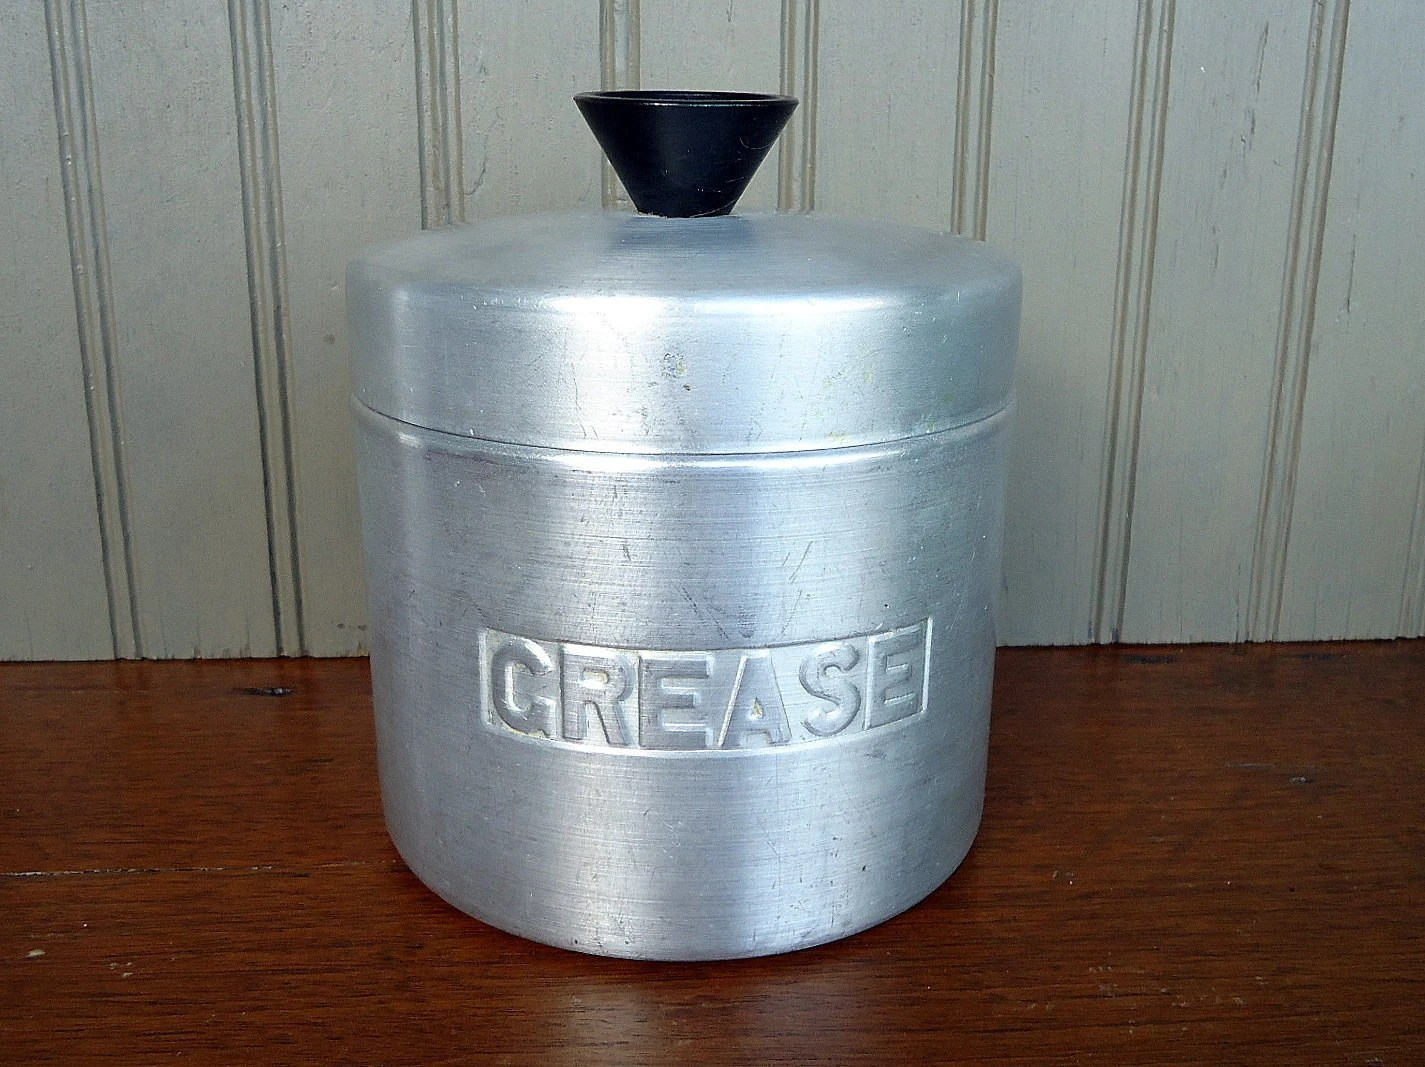 Grease Storage Containers